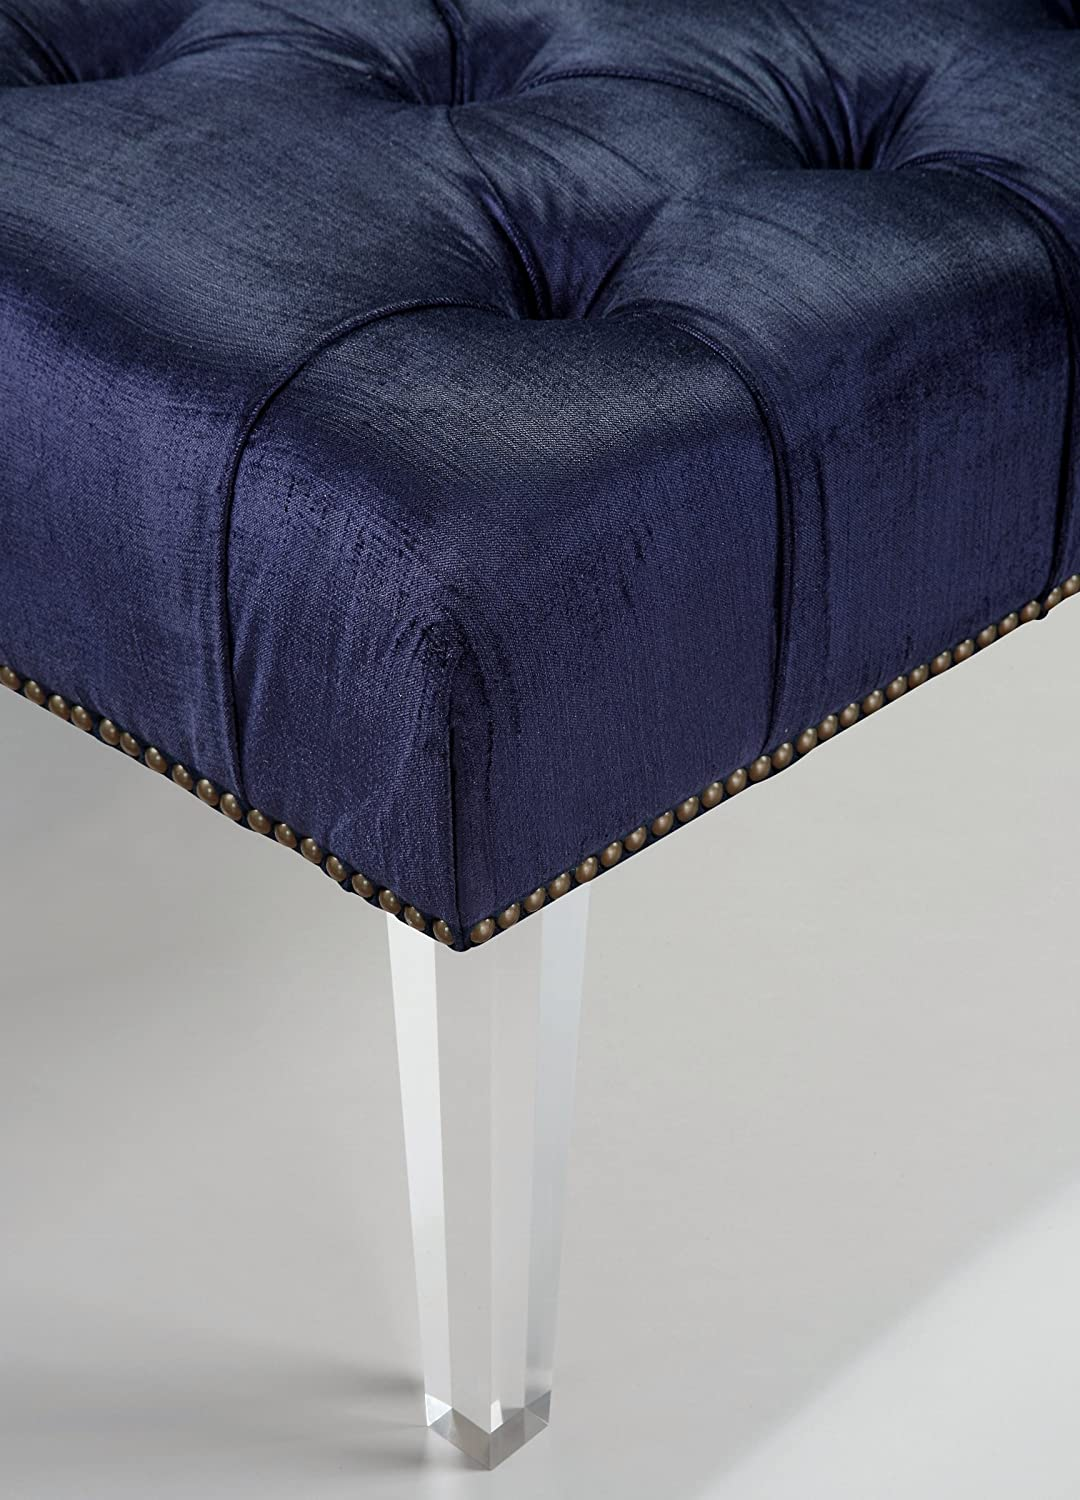 Amazon.com: Tov Furniture The Stella Collection Modern Velvet Upholstered  Wood Accent Bench With Lucite Legs, Navy: Kitchen U0026 Dining